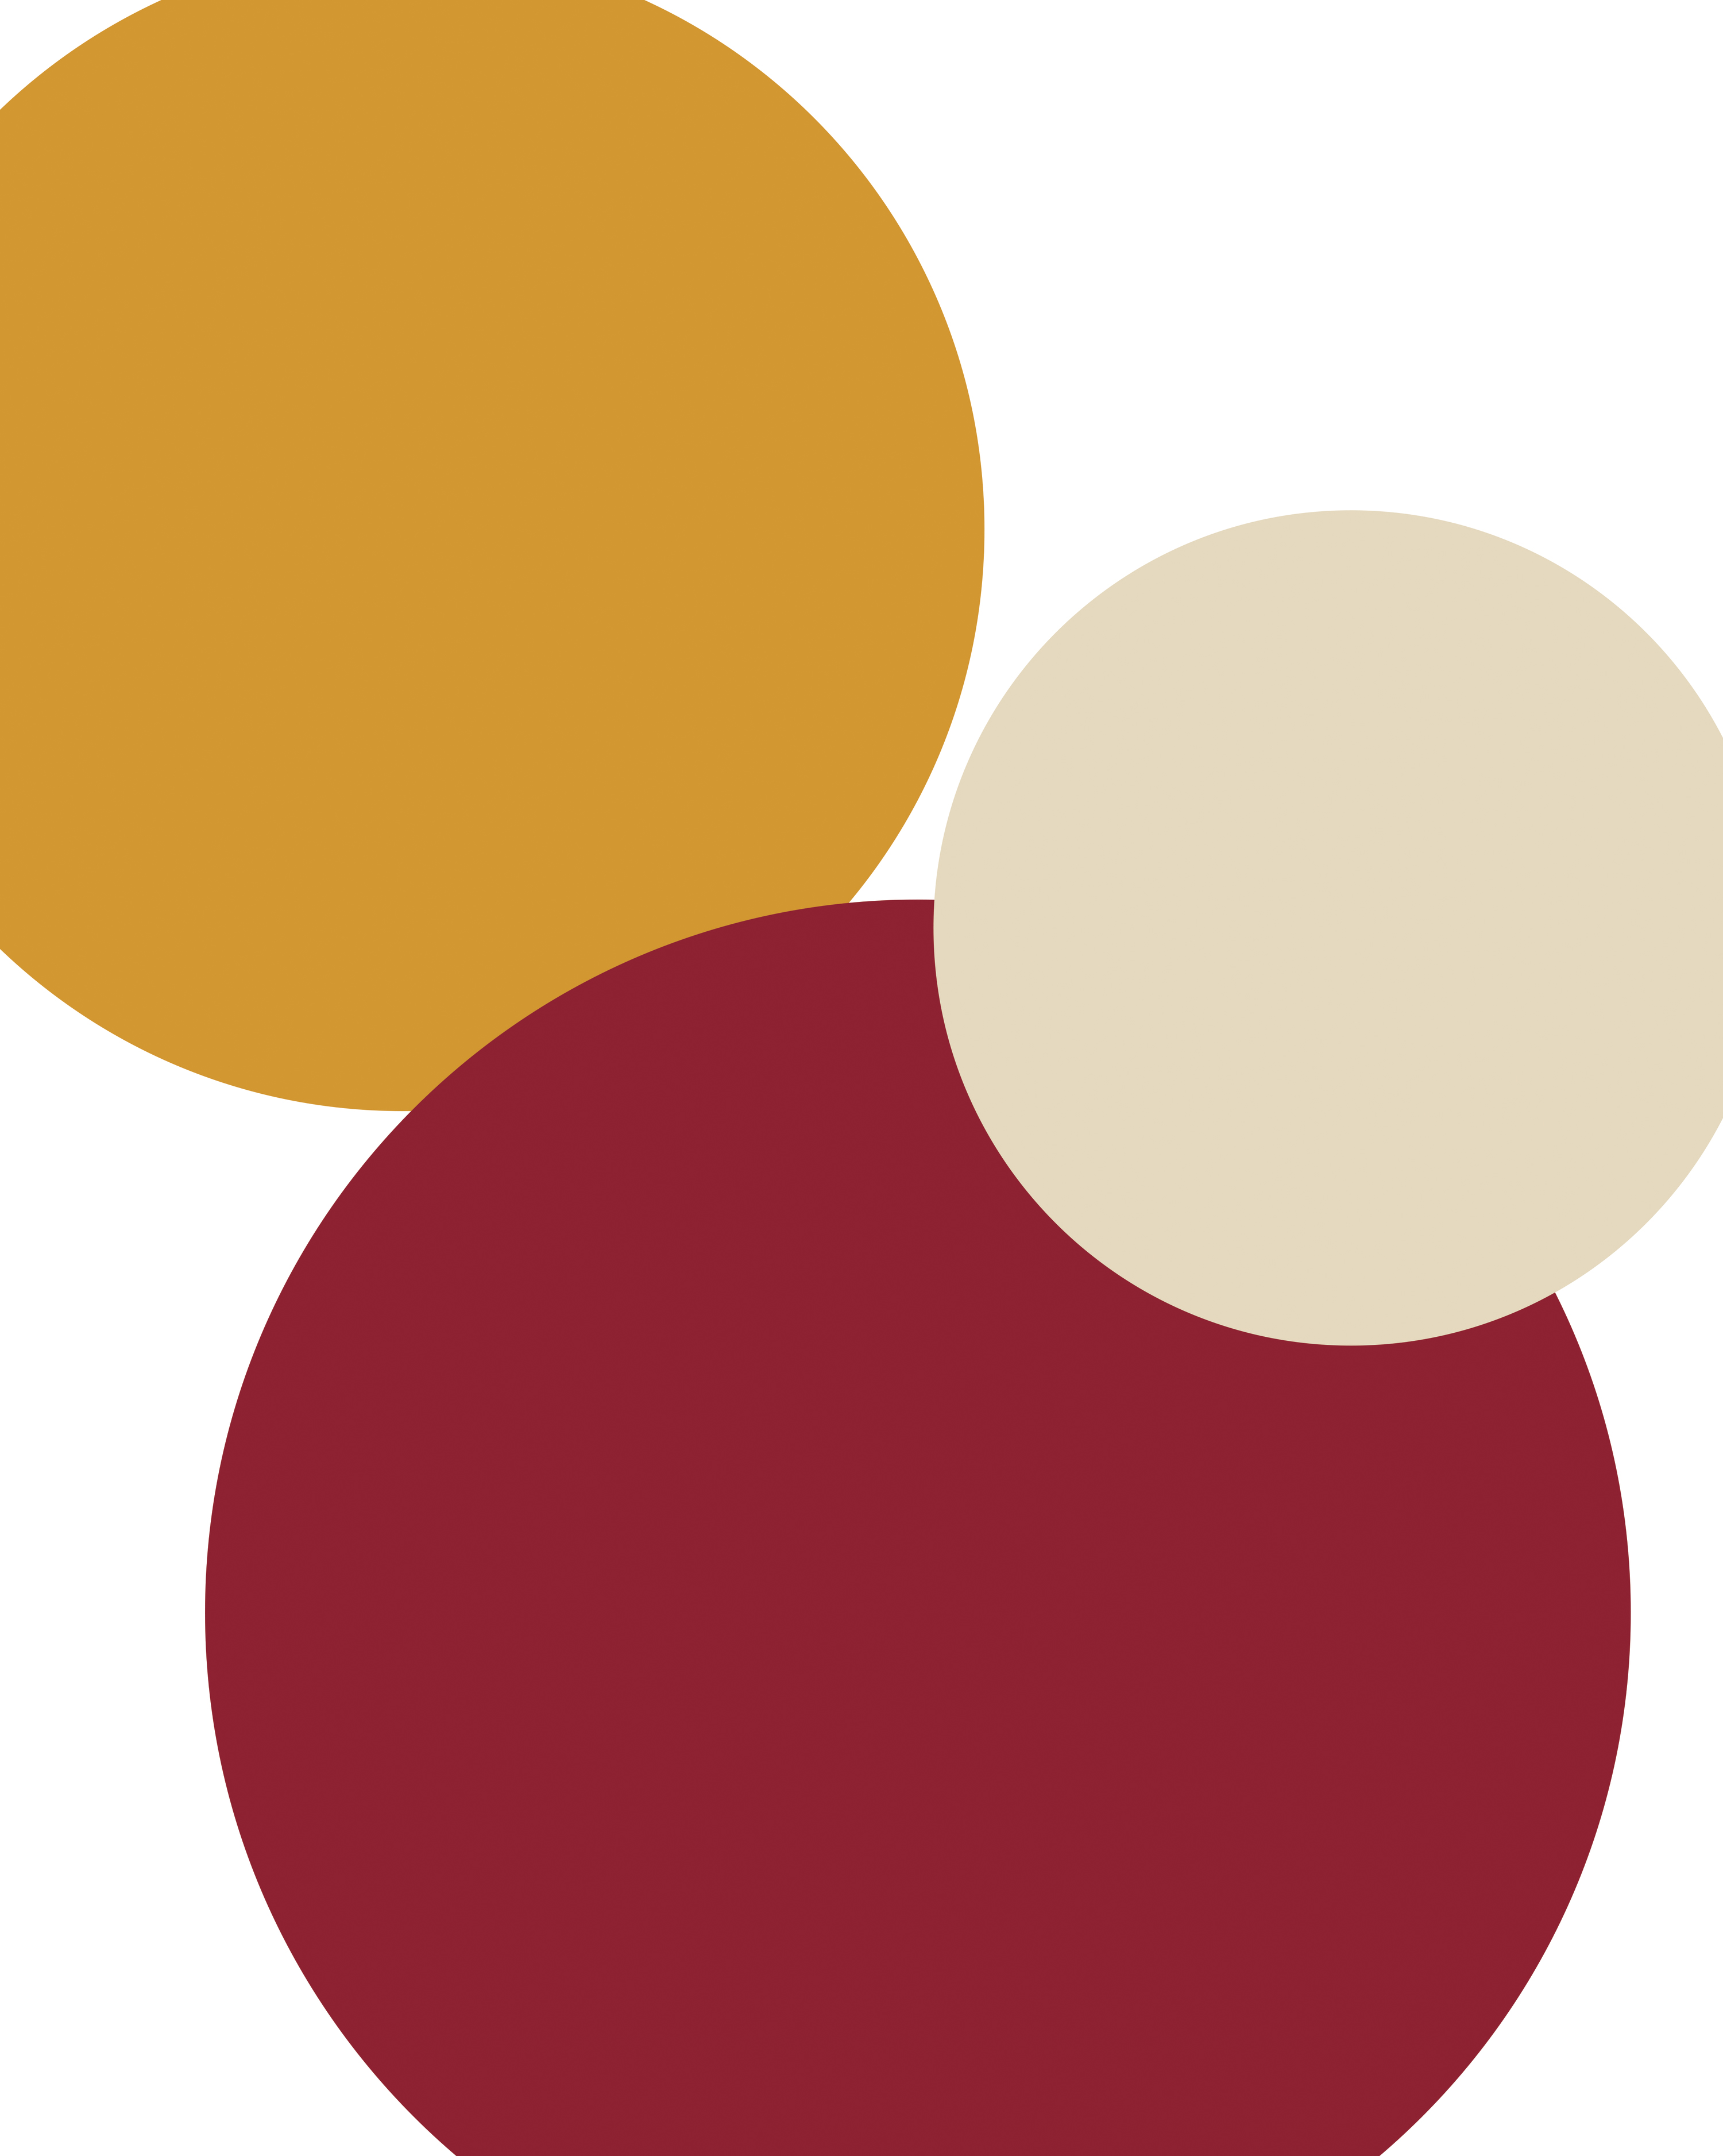 Cream, Maroon, and Gold